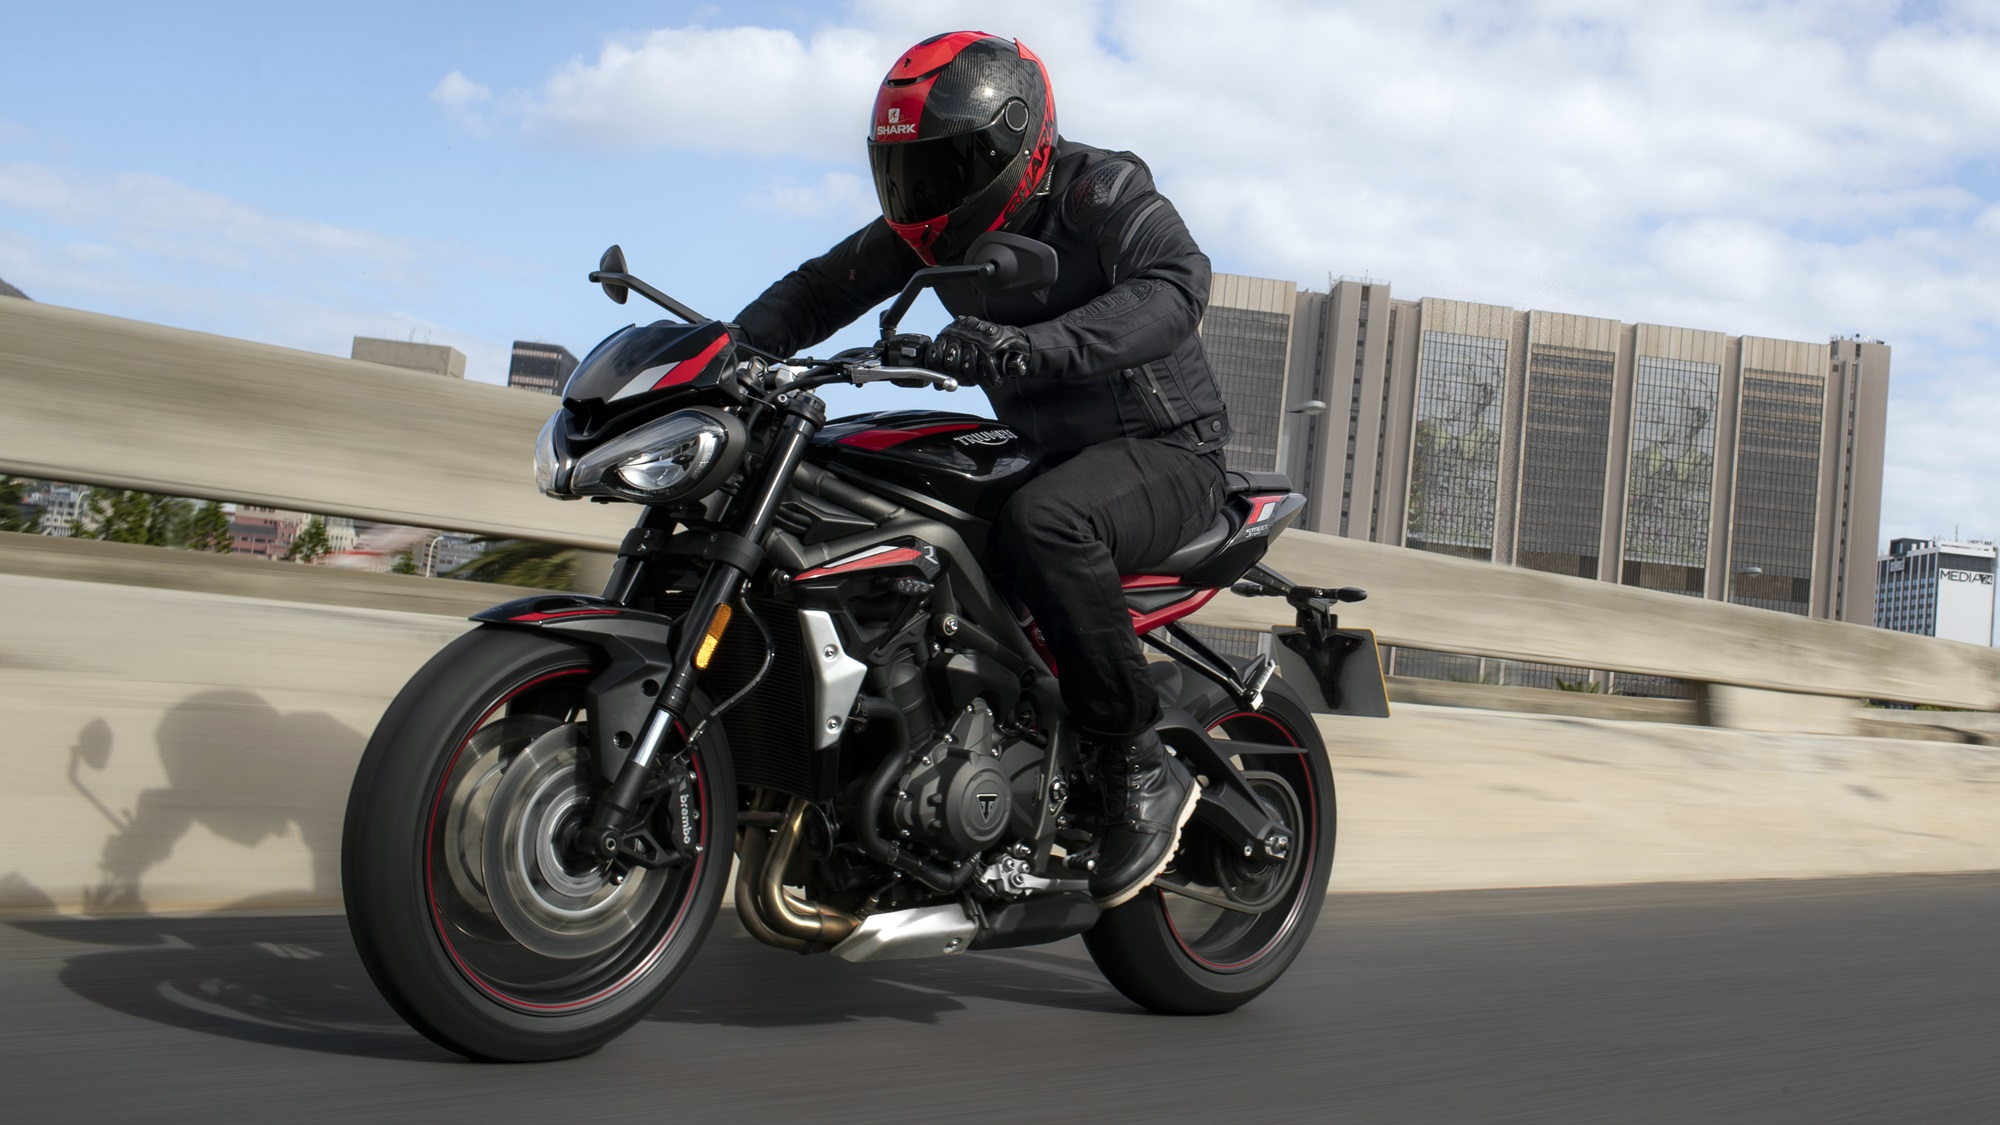 2020 Triumph Street Triple R exhaust silencer